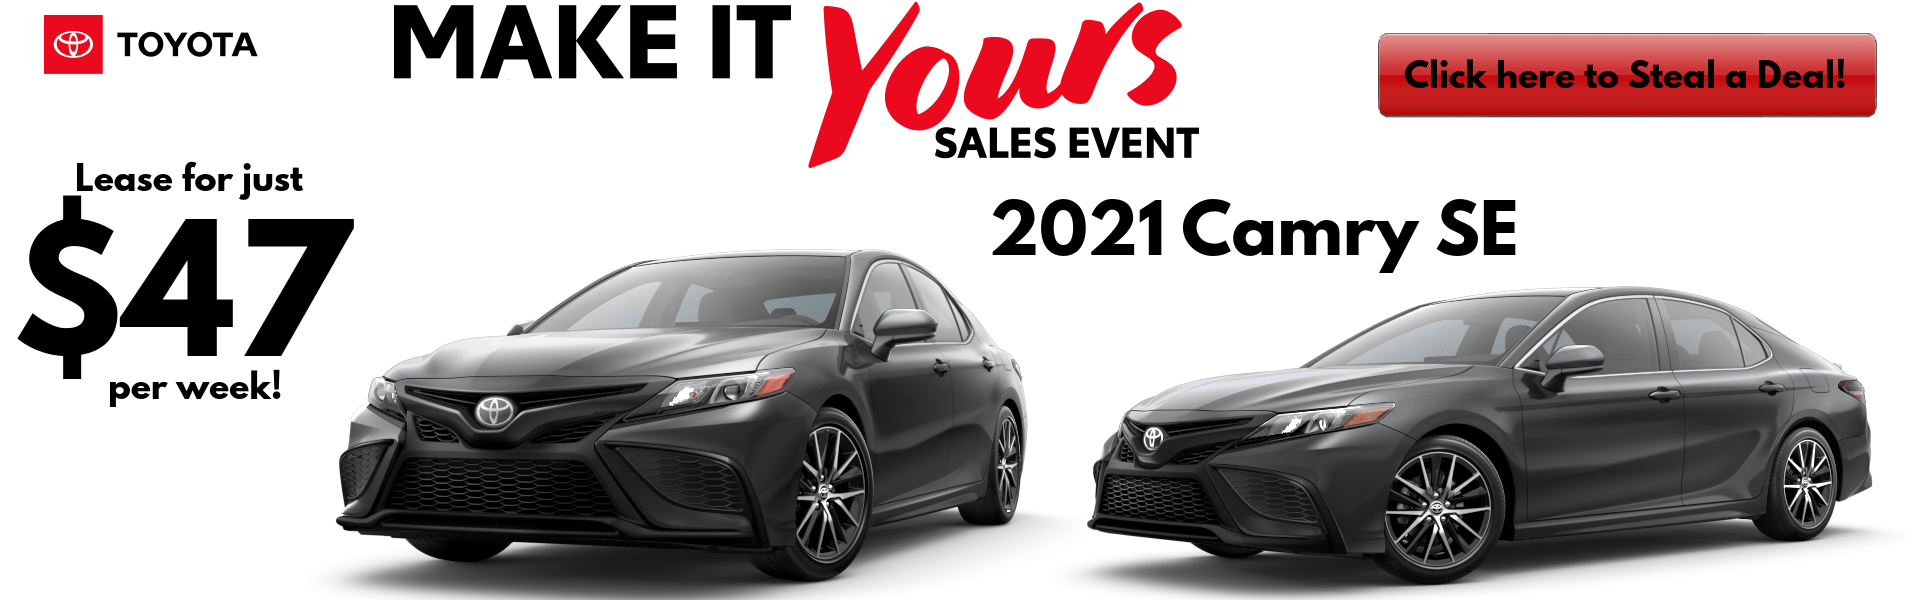 2021 Camry SE Lease